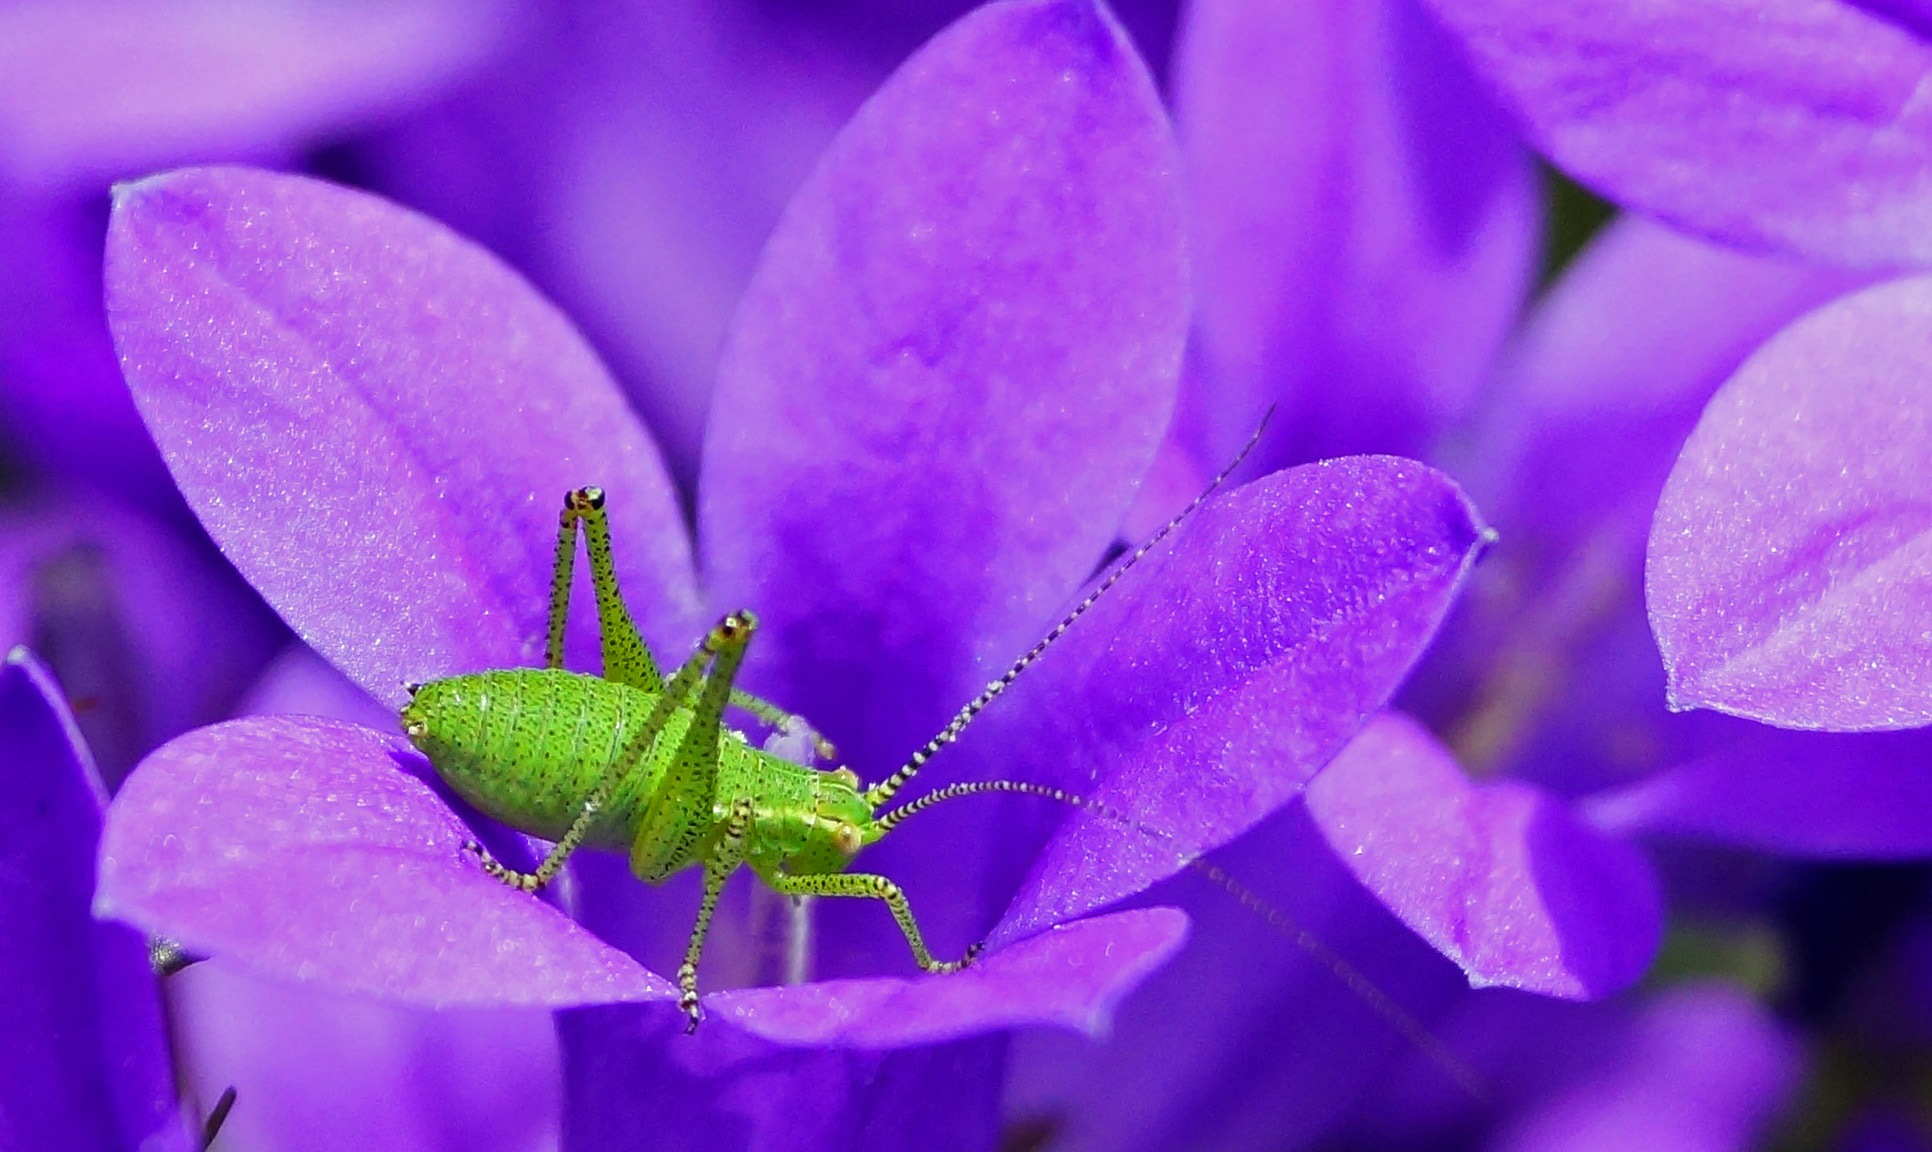 Speckled Bush-Cricket by Marian Baay